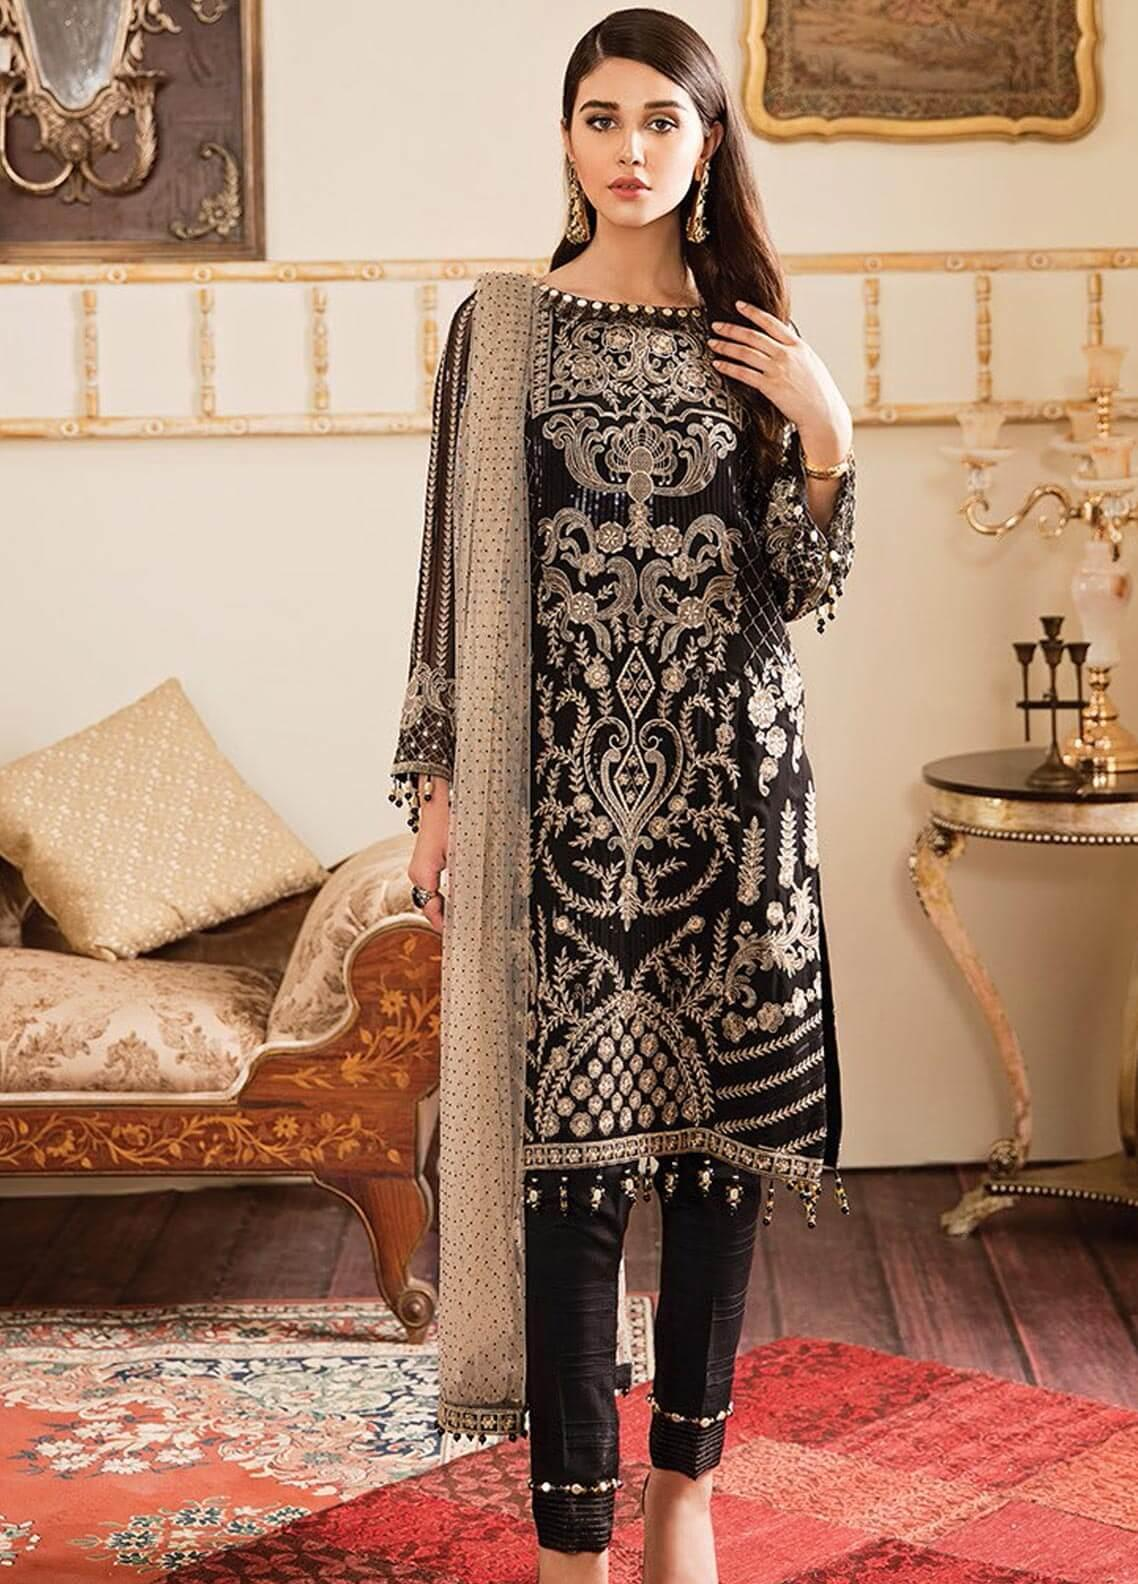 Kuch Khas By Flossie Embroidered Chiffon Unstitched 3 Piece Suit FKK19-C4 04 FLORENCE - Luxury Collection